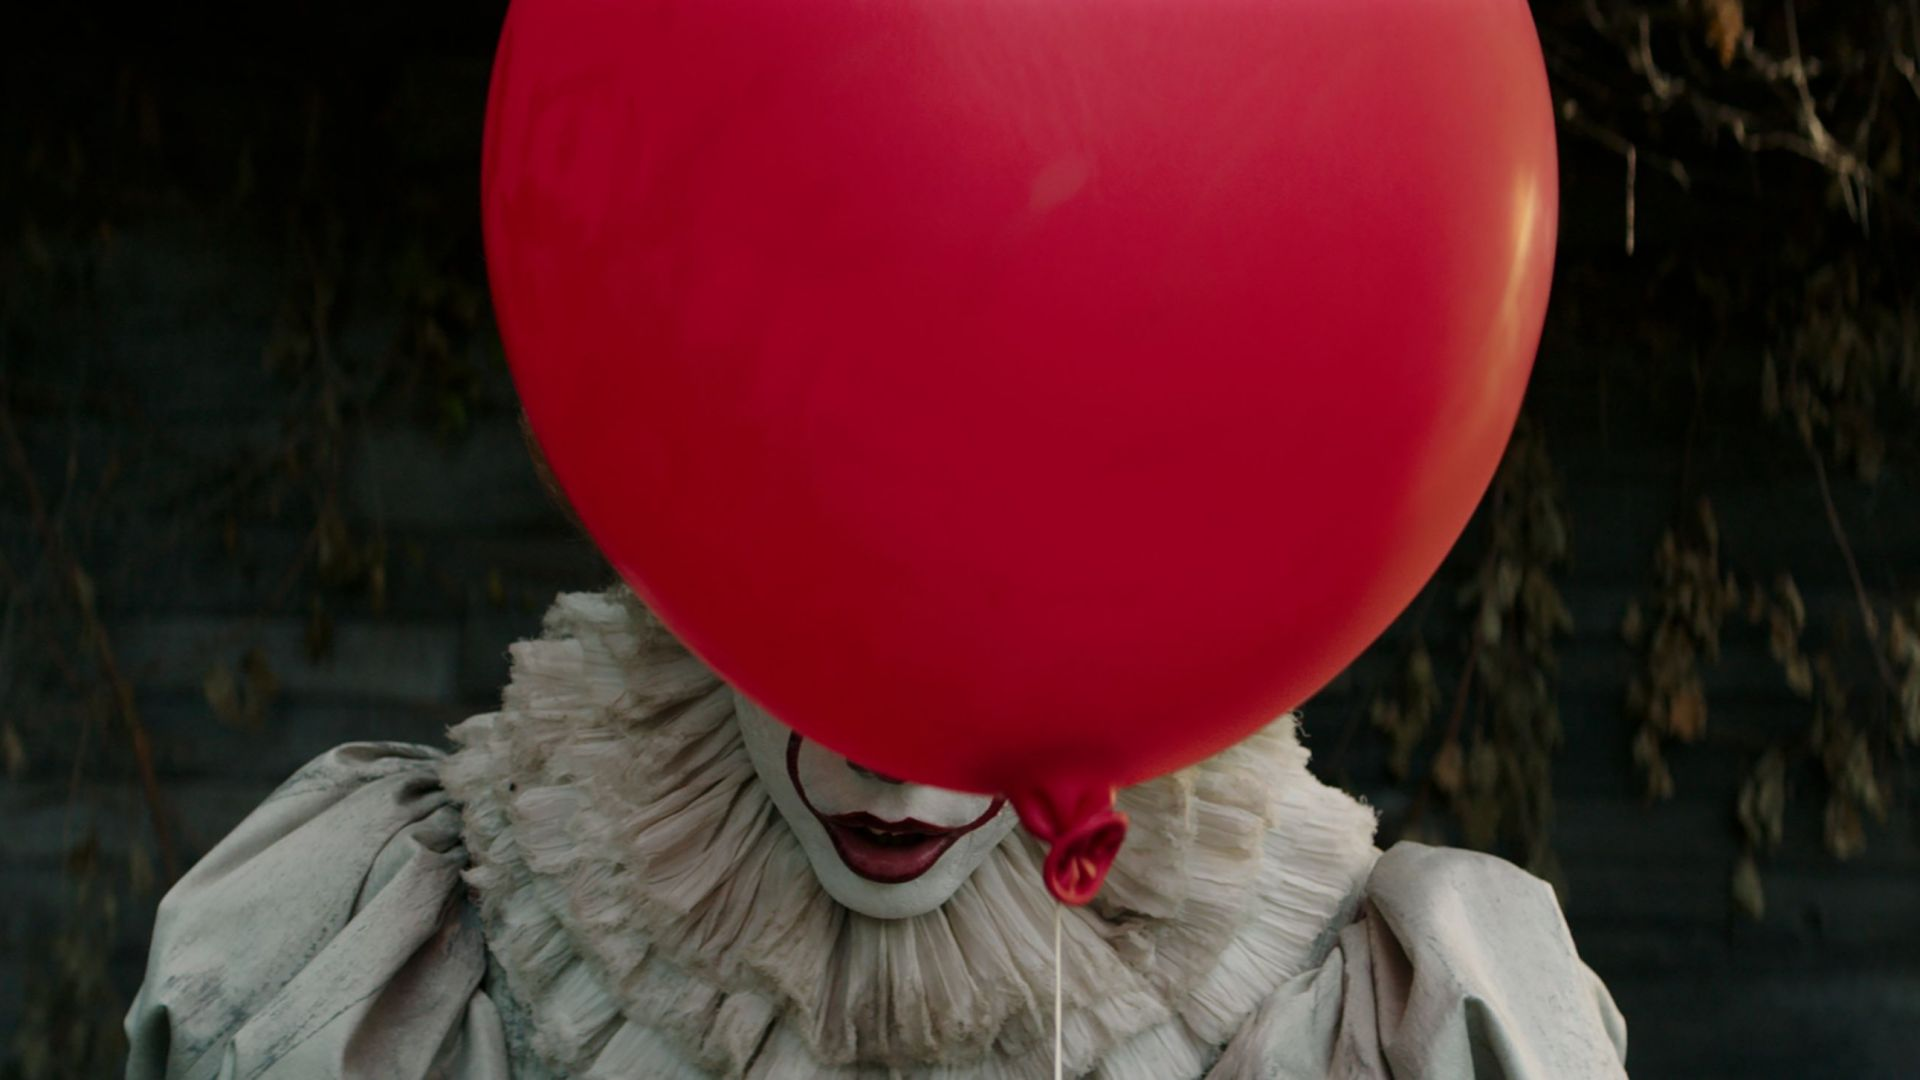 It Pennywise Balloon Clown Best Movies Horizontal